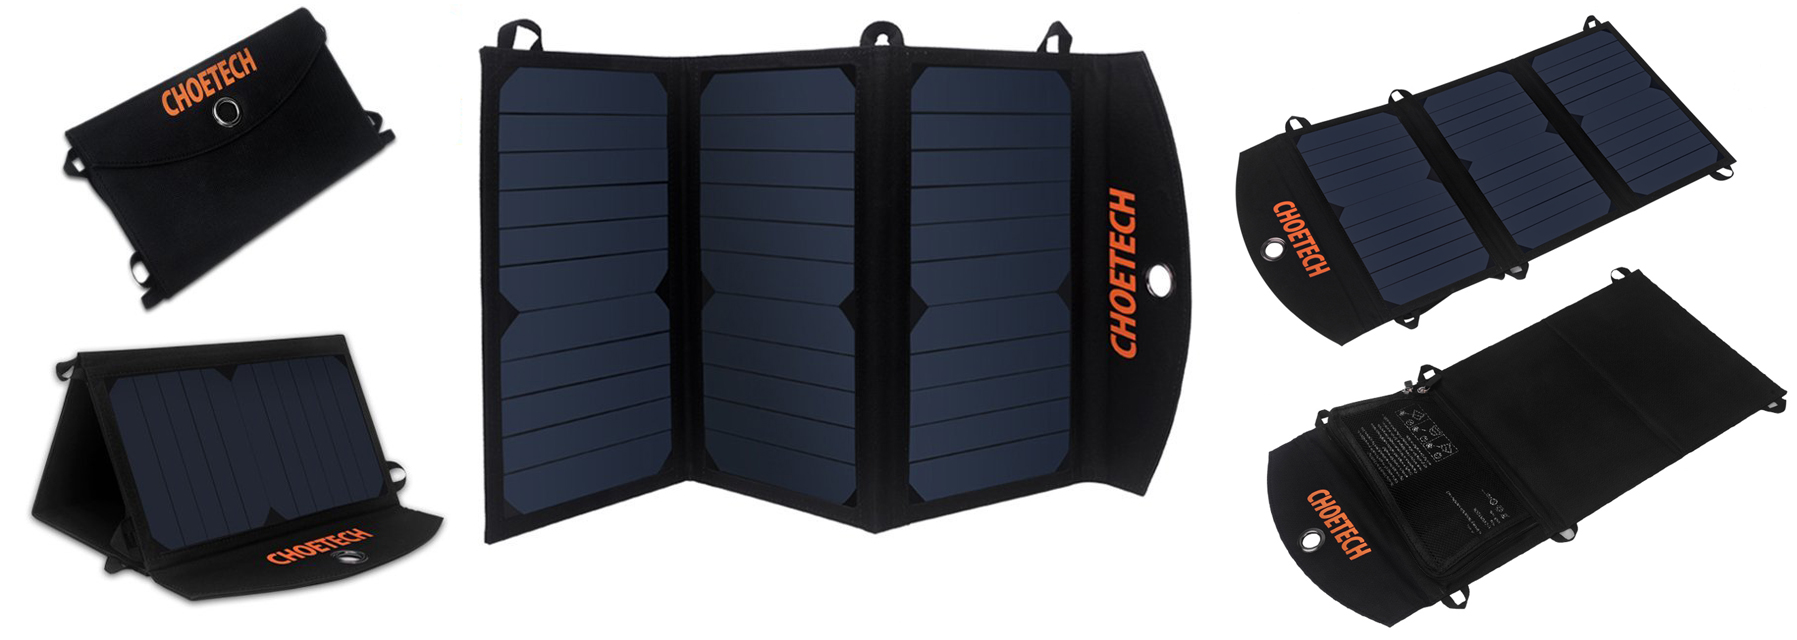 Choetech SC001: A Solar Charger That Actually Works